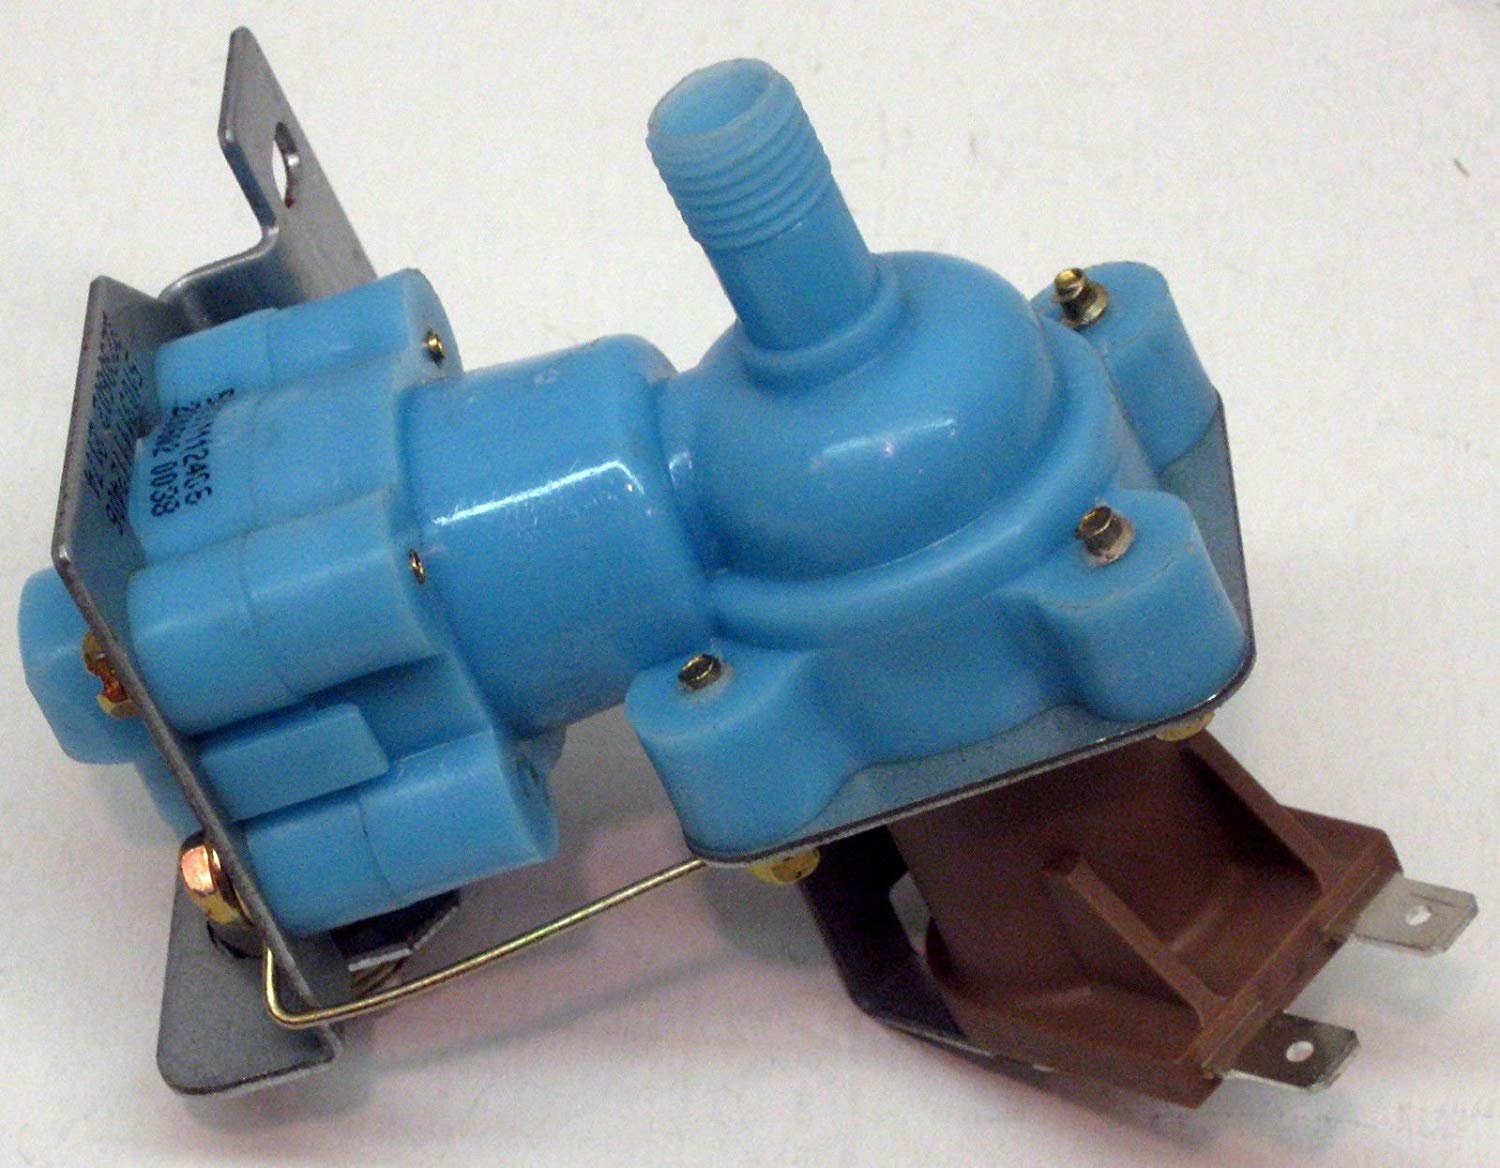 WV8047 4318047 Refrigerator Icemaker Water Solenoid Valve for Whirlpool Kenmore Gxfc